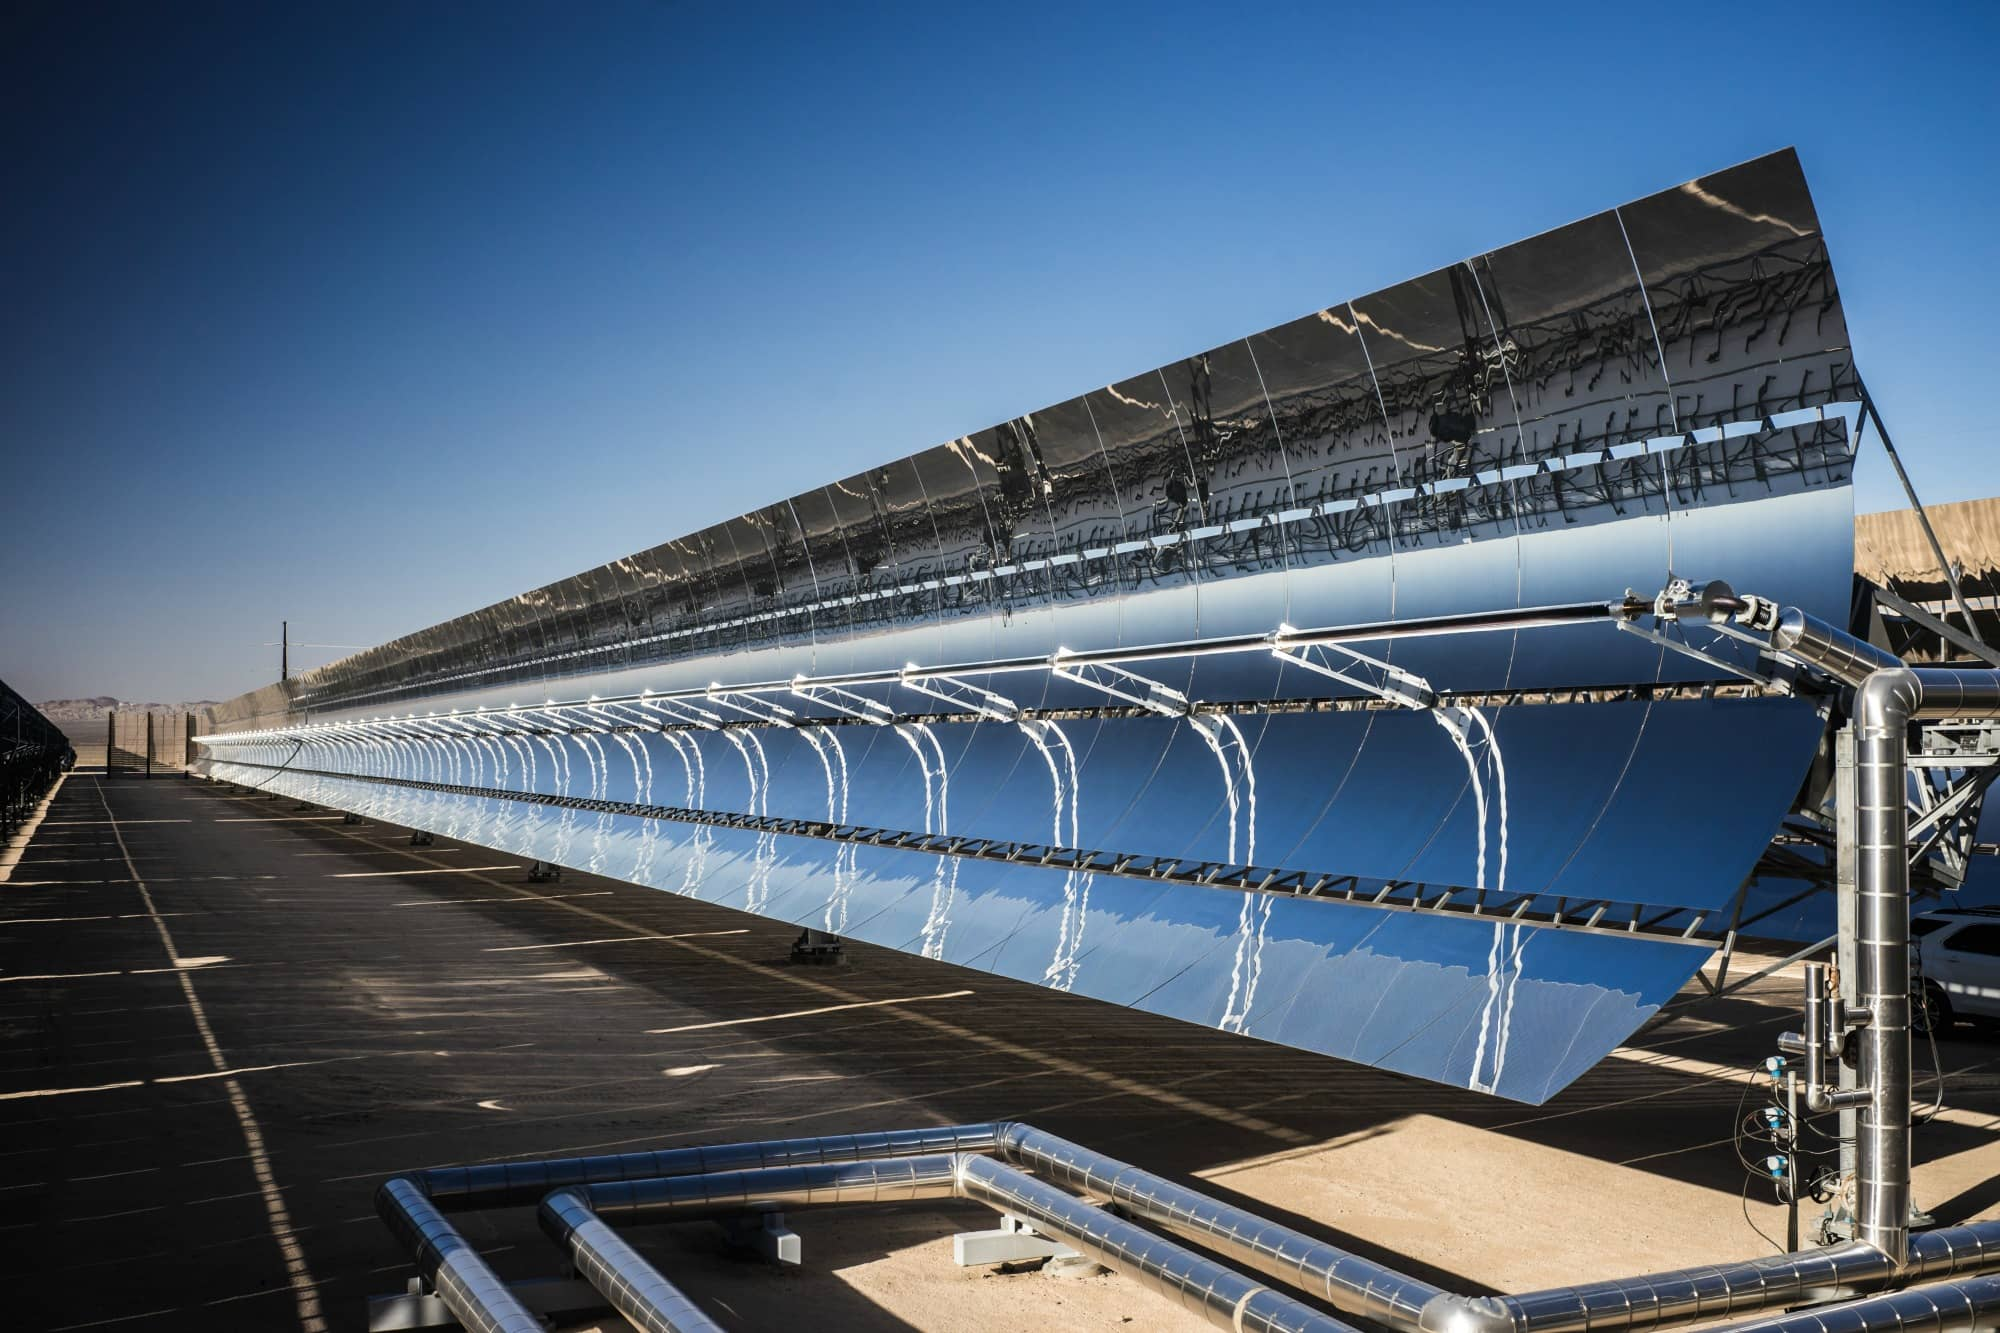 Duba 1 Integrated Solar Combined-Cycle Plant Project